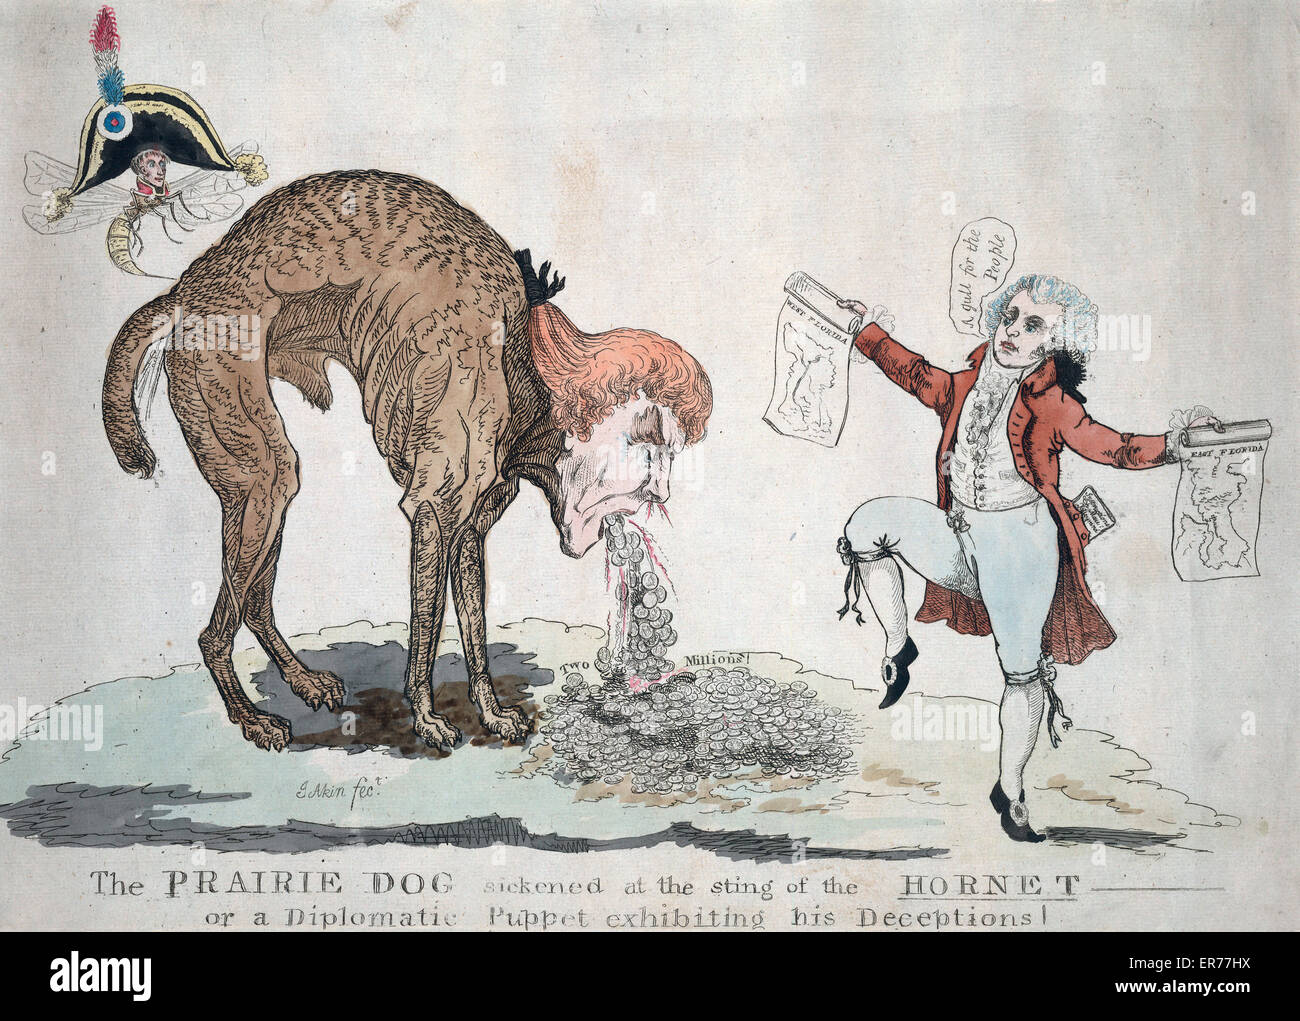 The prairie dog sickened at the sting of the hornet or a diplomatic puppet exhibiting his deceptions. James Akin's - Stock Image